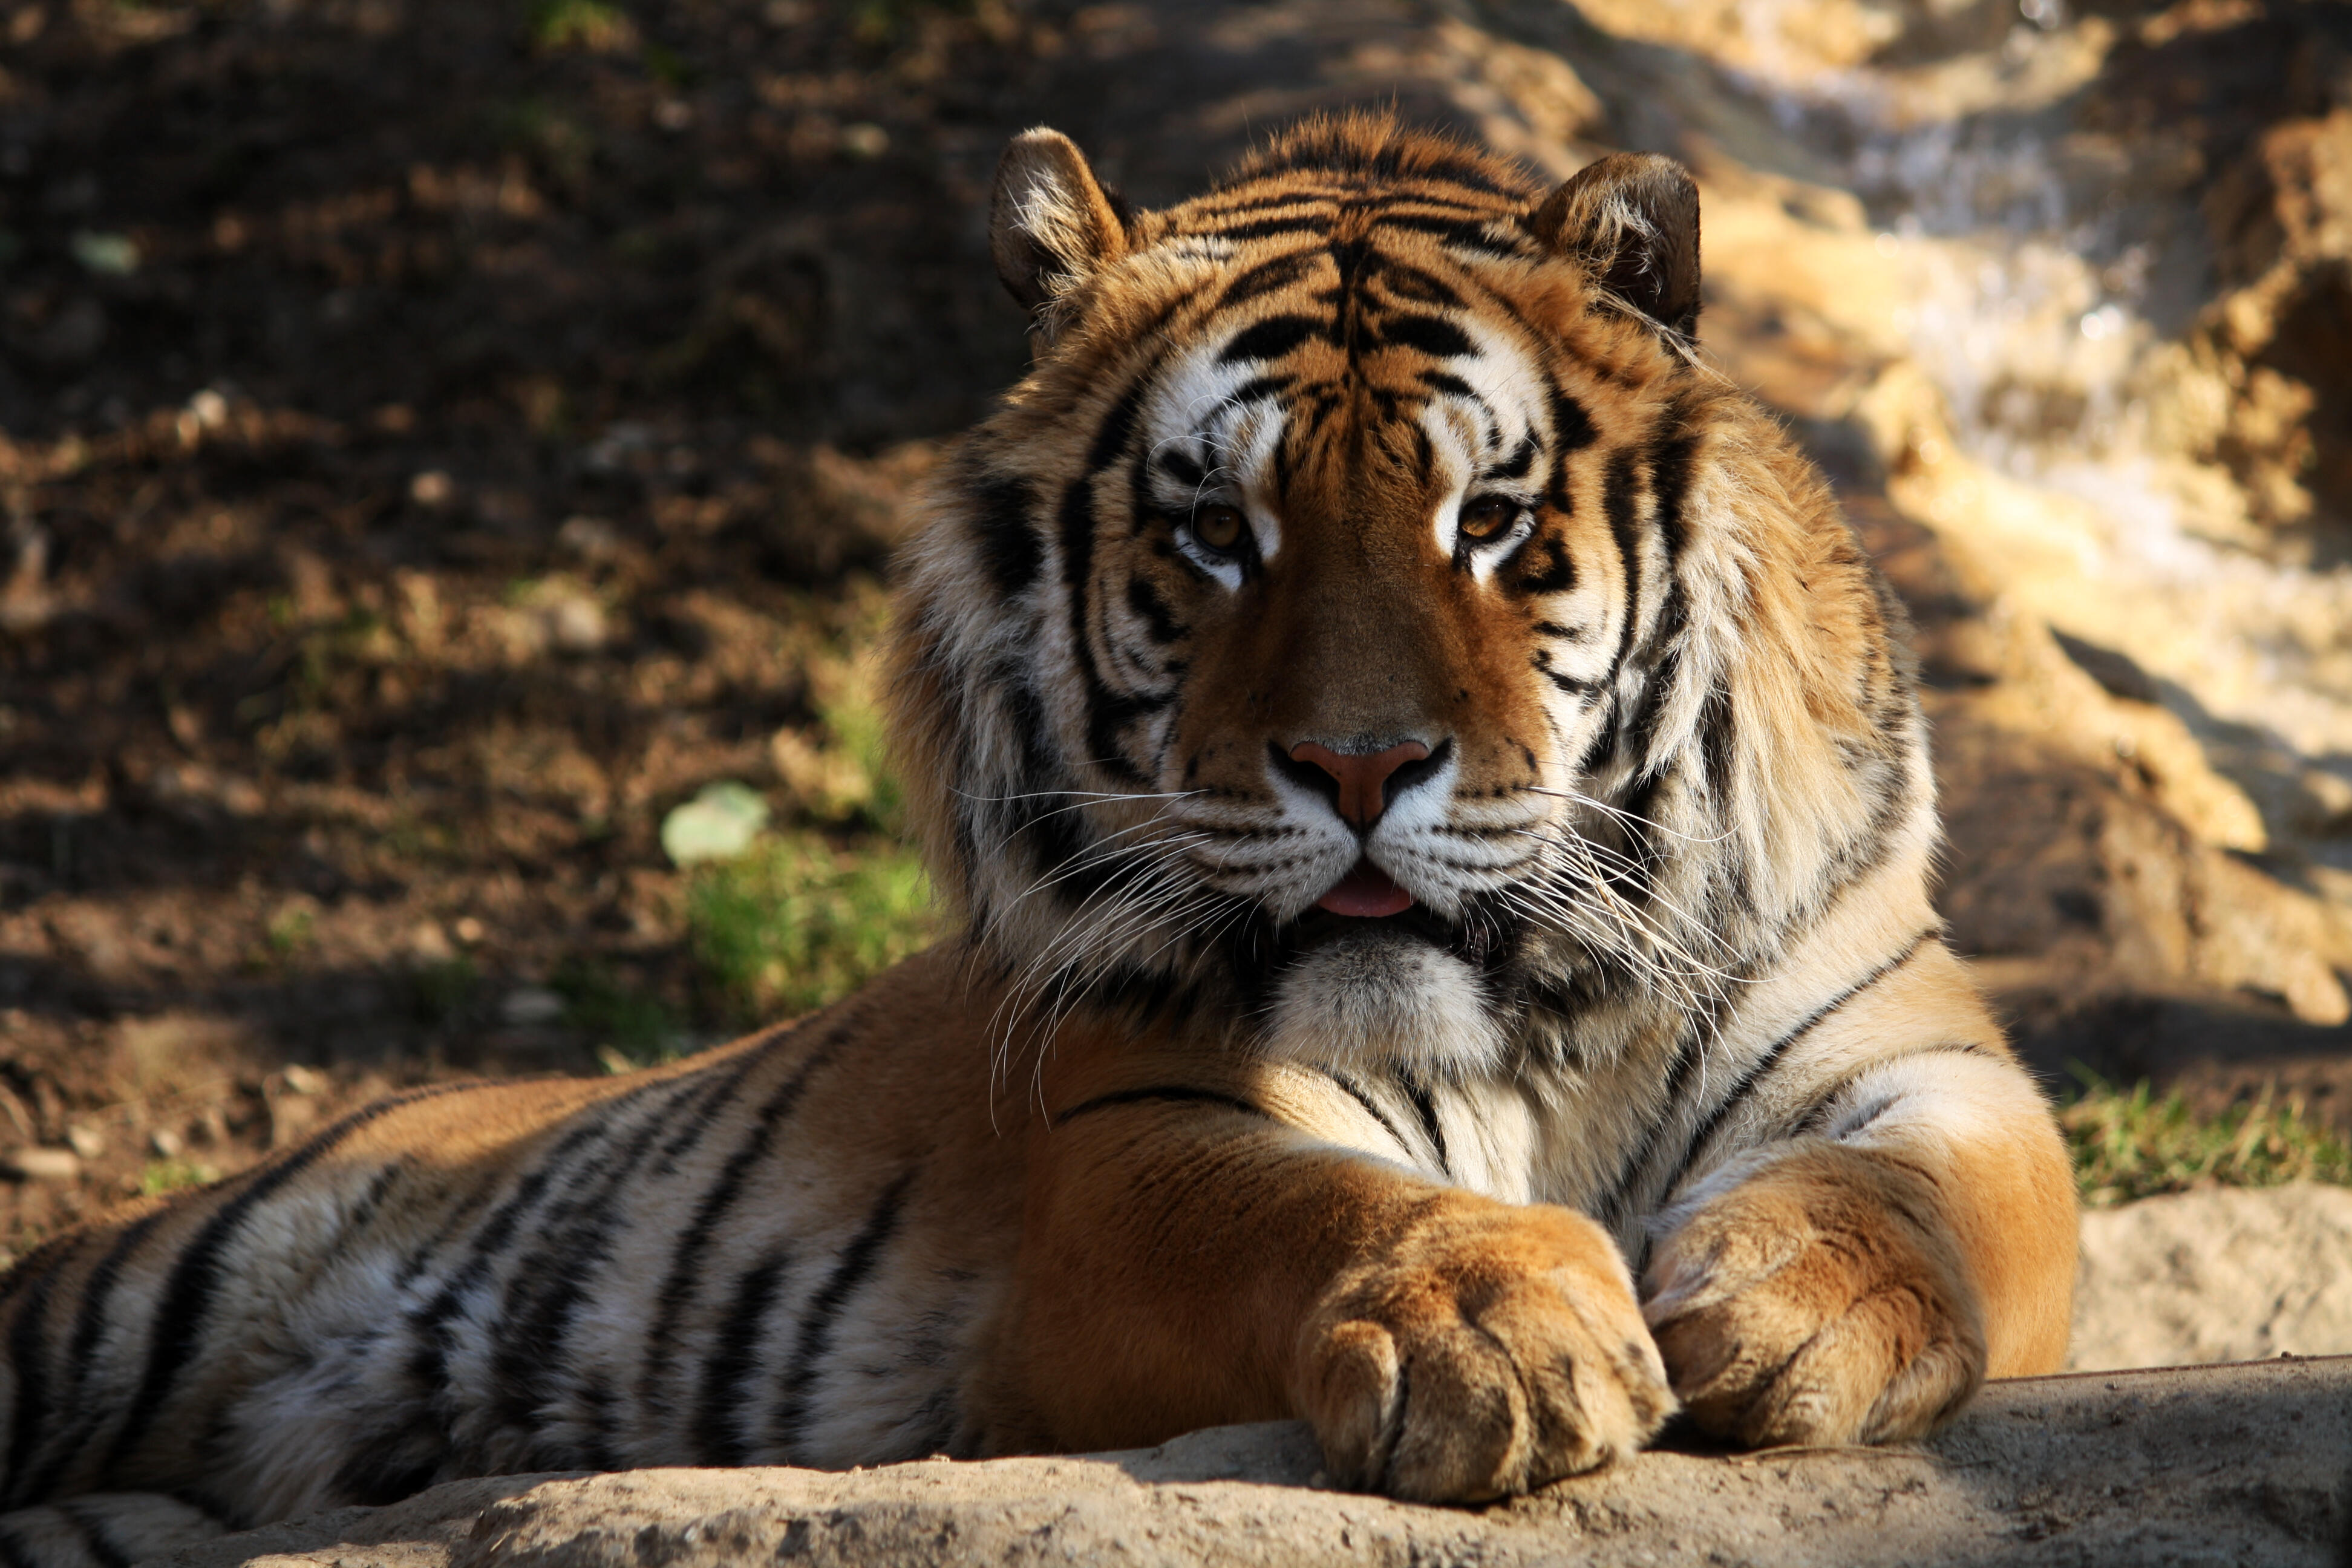 extinct animals danger tiger becoming serious population re malayan indochinese